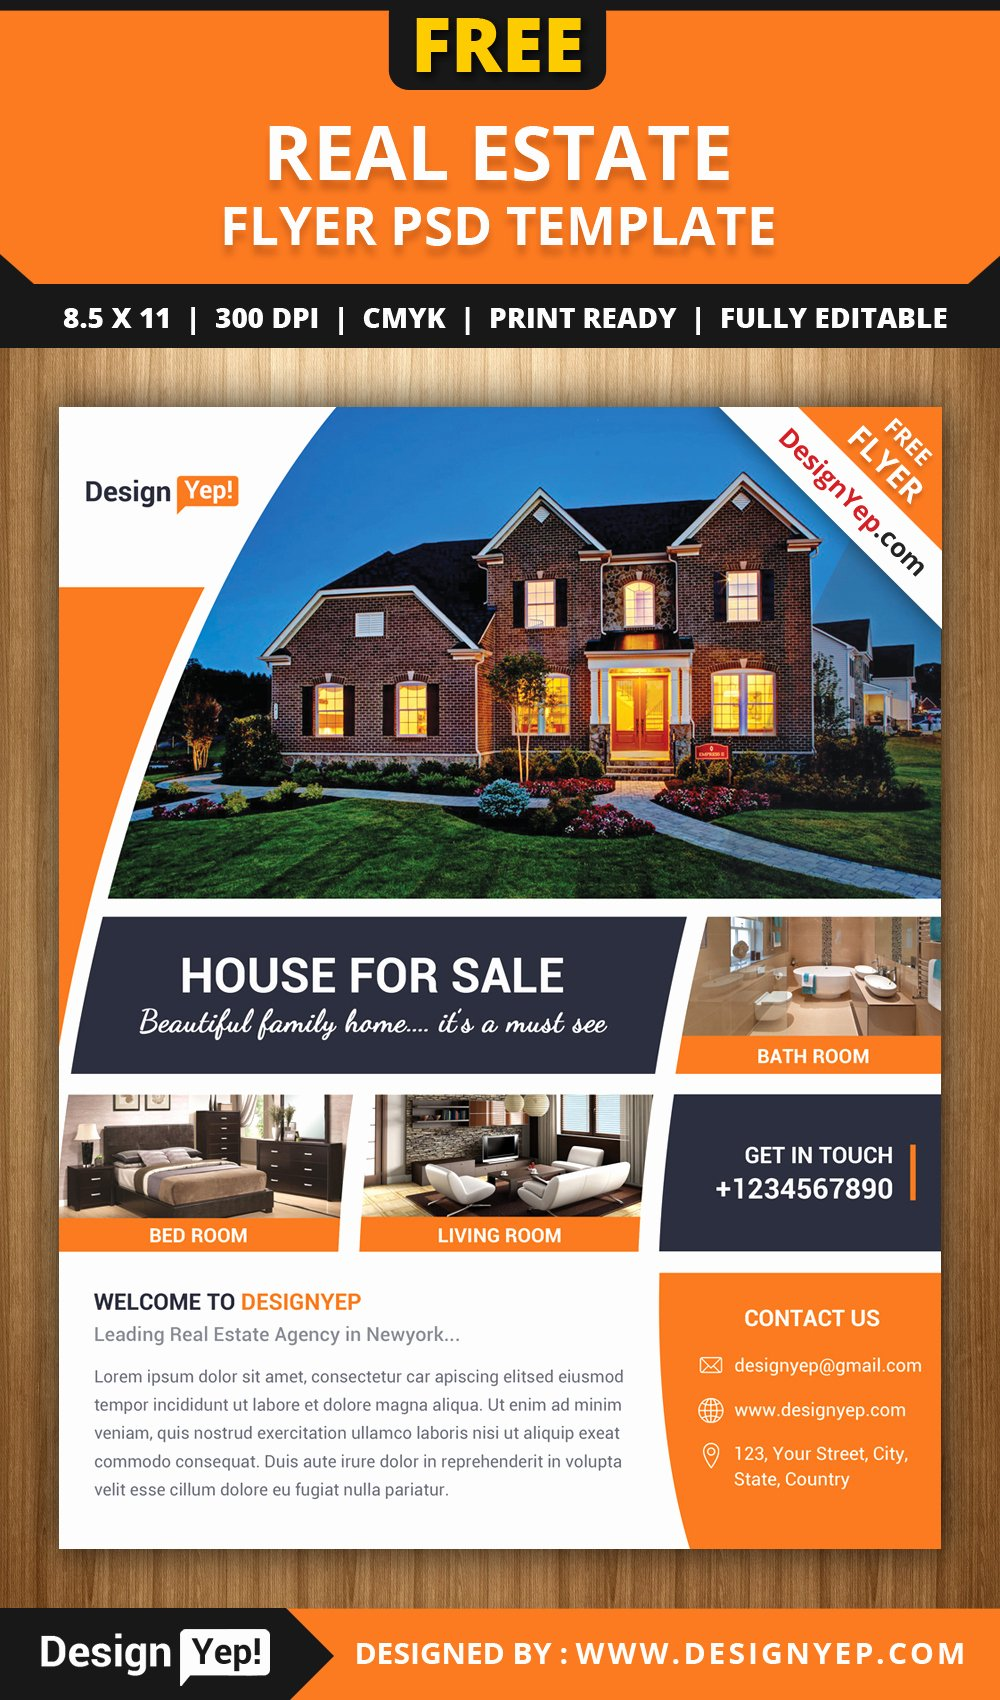 Home for Sale Flyer Fresh Free Real Estate Flyer Psd Template Designyep